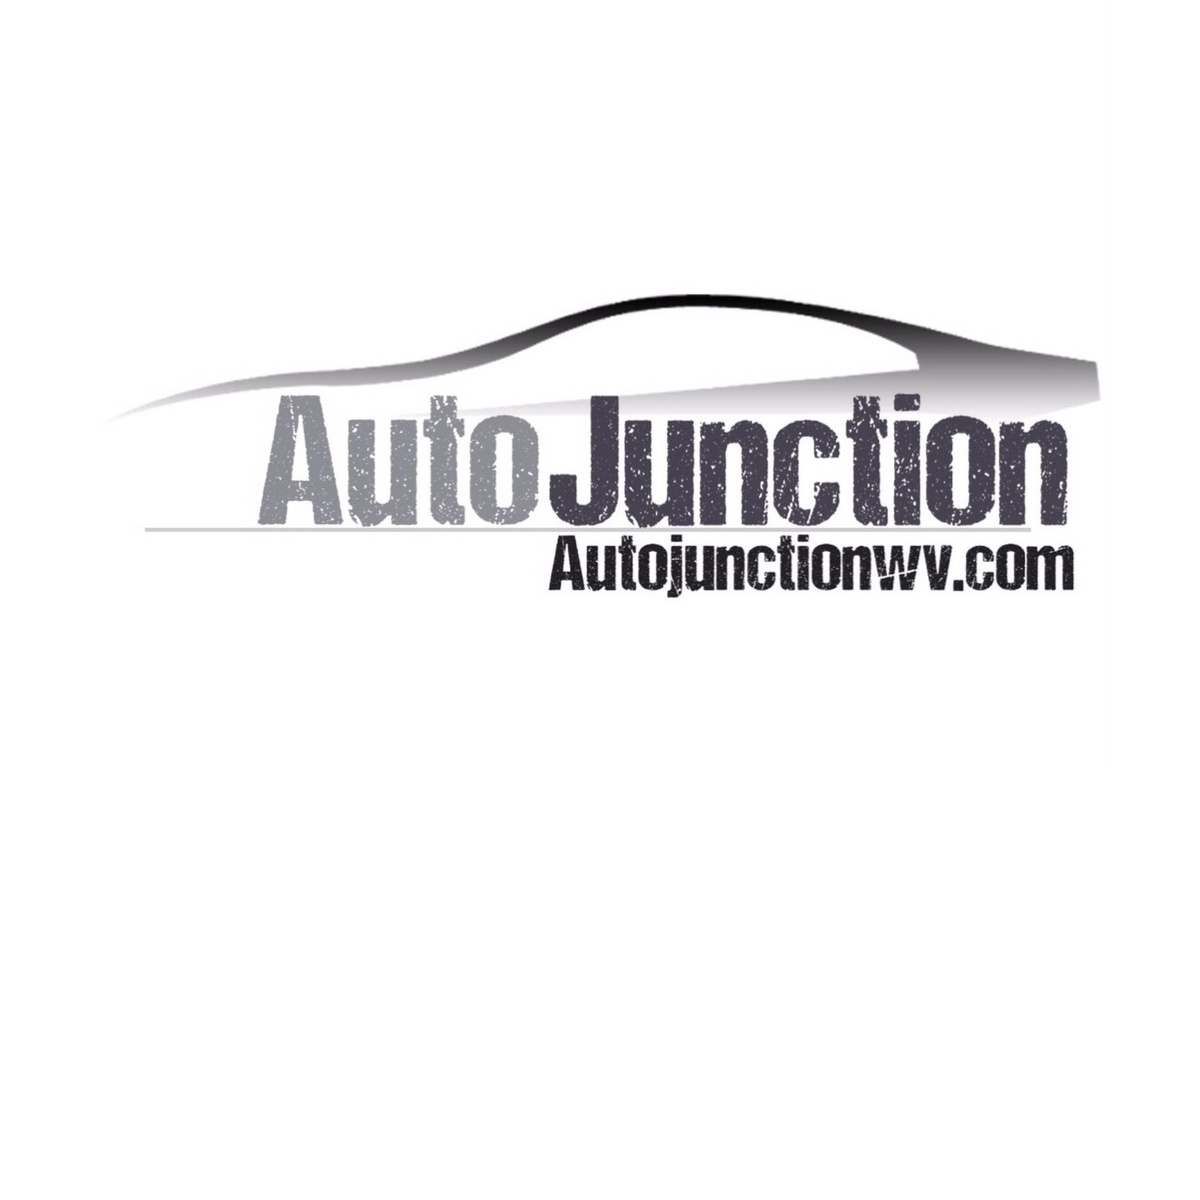 Auto Junction 50 250 Grafton Wv Read Consumer Reviews